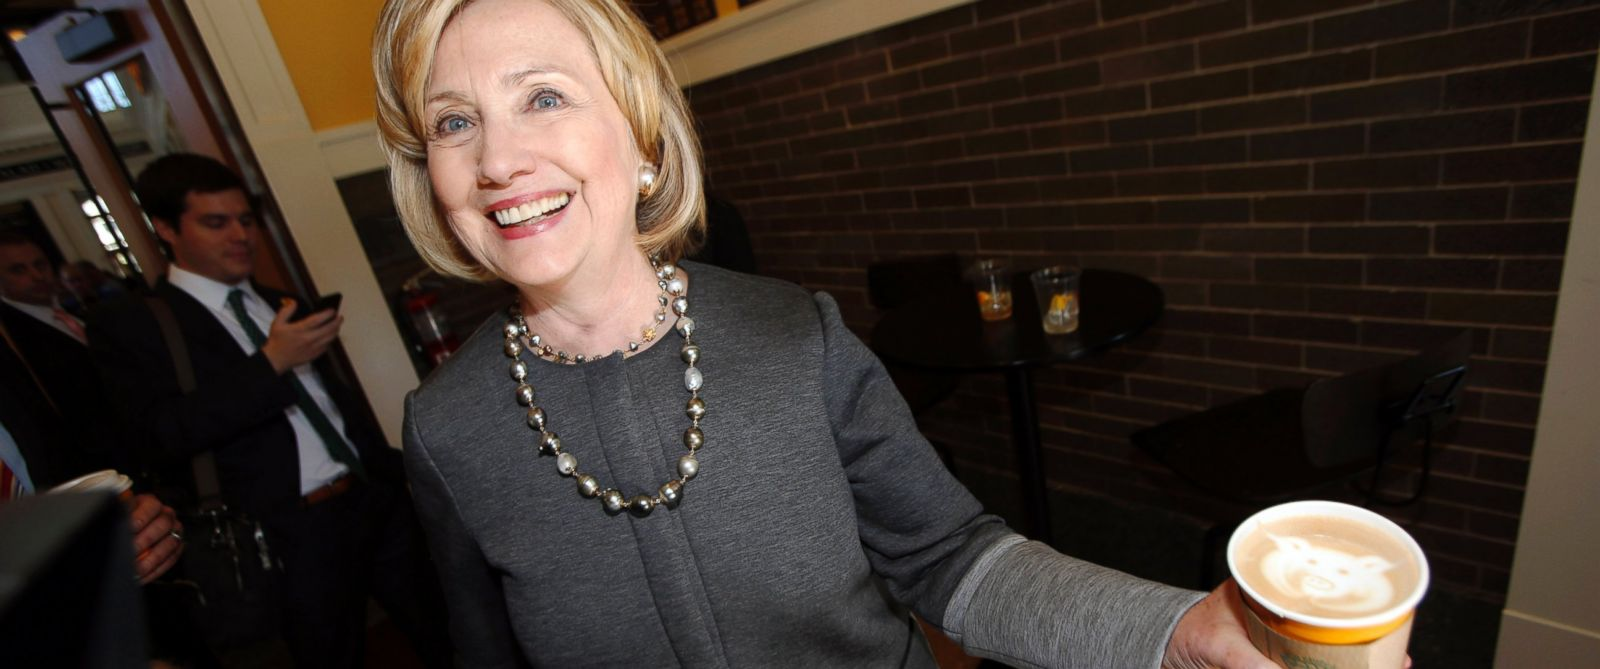 PHOTO: Hillary Clinton holds up her small white mocha latte with a logo of the coffee shop drawn in the foam as she campaigns for U.S. Sen. Mark Udall, during a stop in the newly-renovated Union Station in Denver on Oct. 13, 2014.